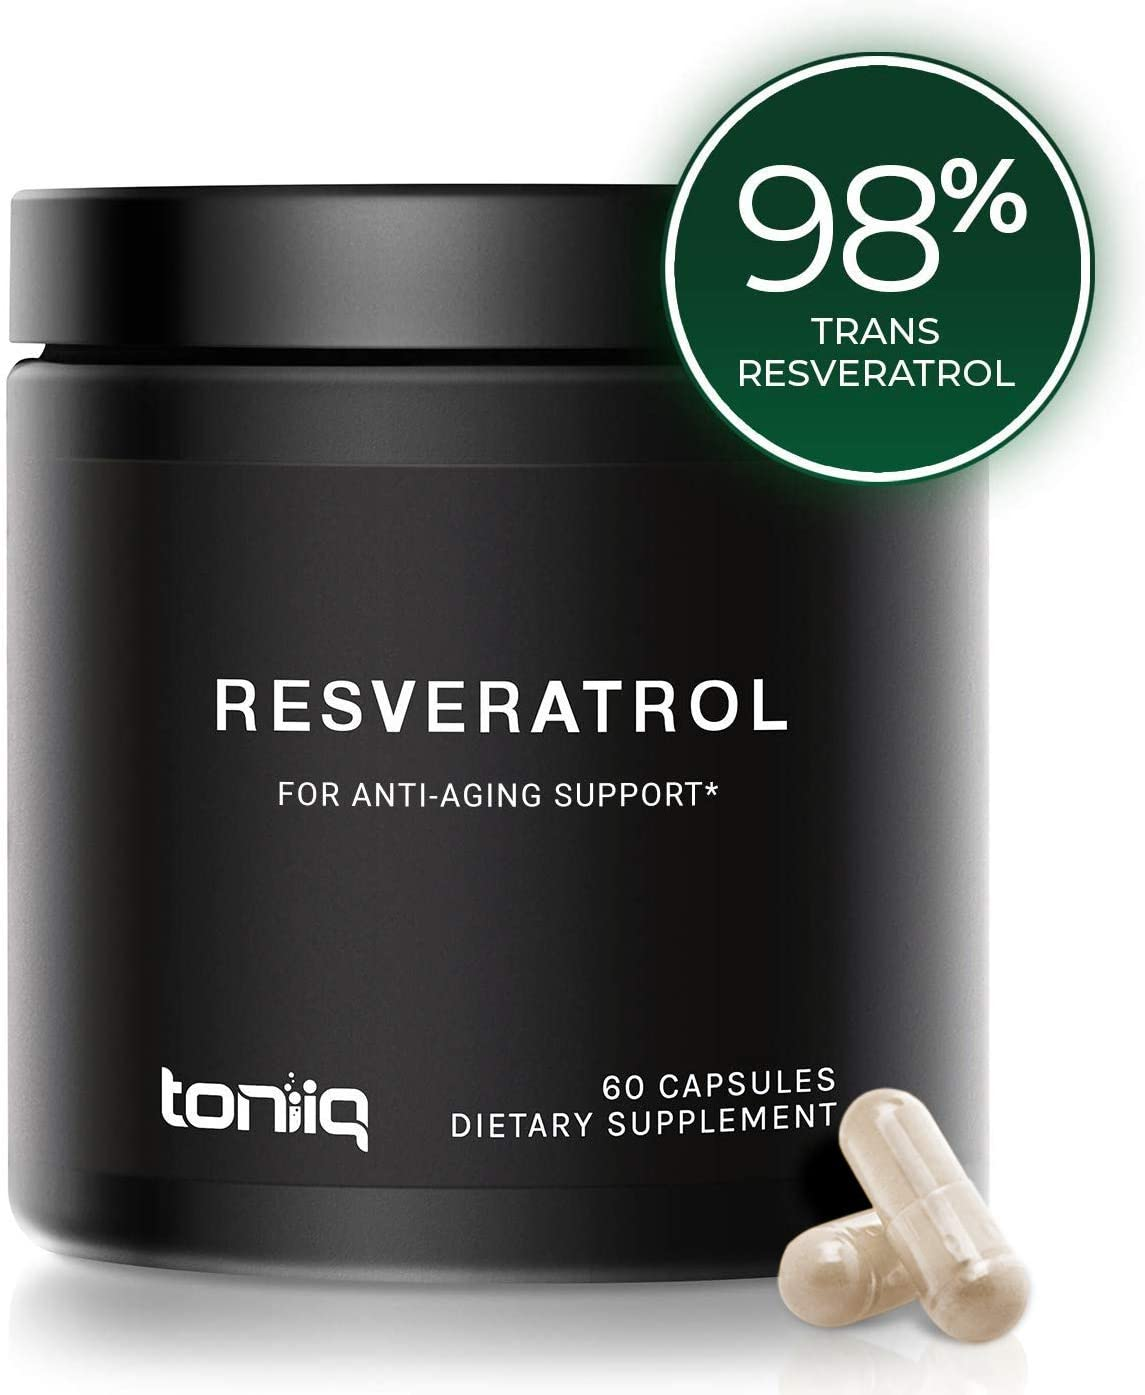 Ultra High Purity Resveratrol Capsules - 98% Trans-Resveratrol - Support for Anti Aging - 60 Caps Reservatrol Supplement